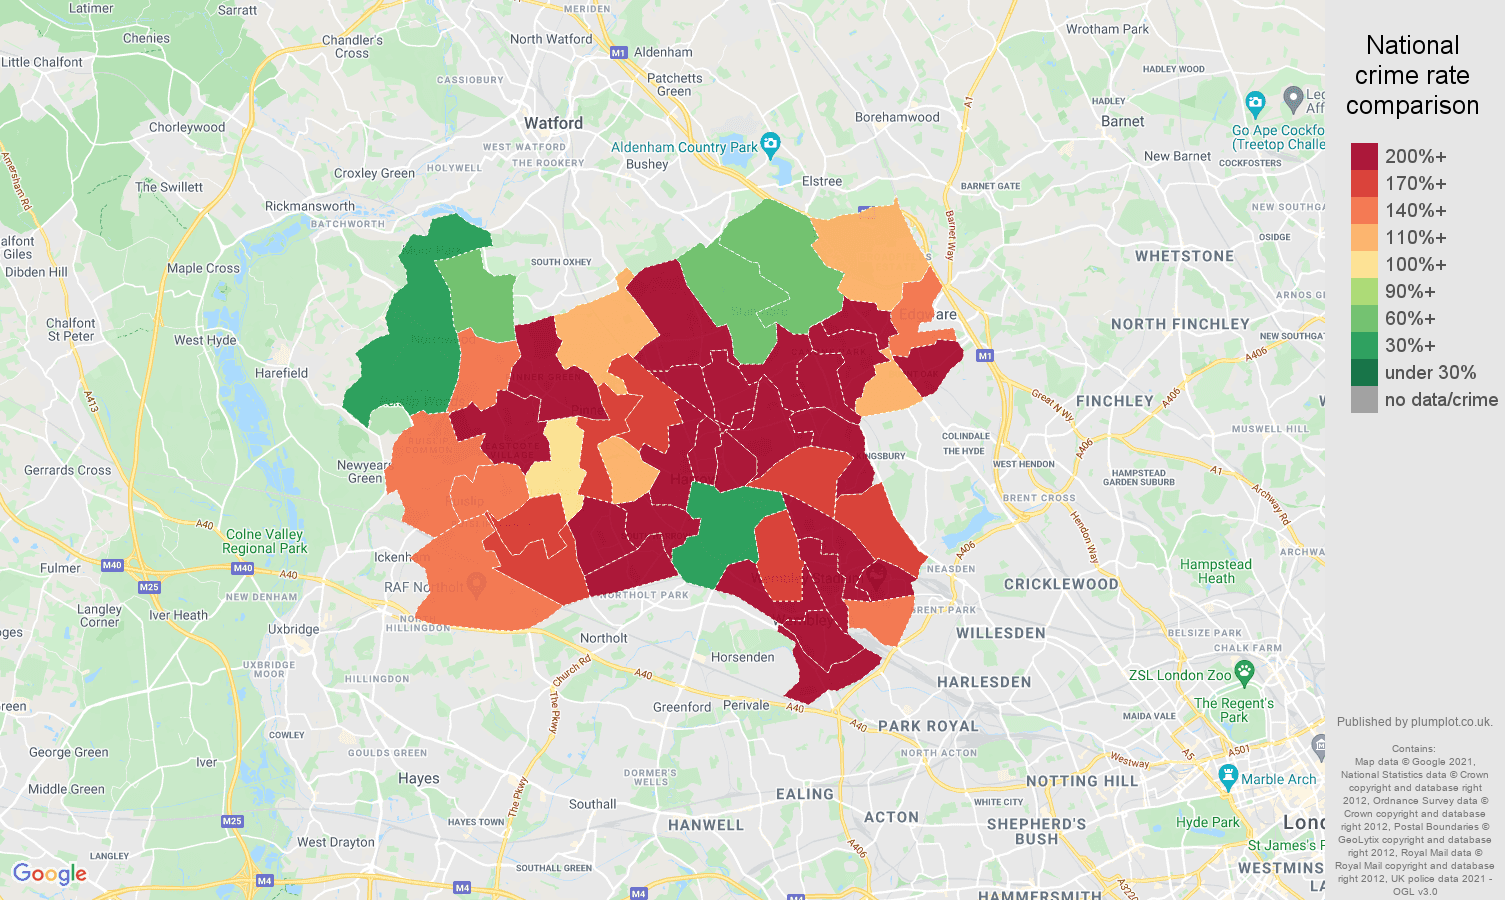 Harrow robbery crime rate comparison map